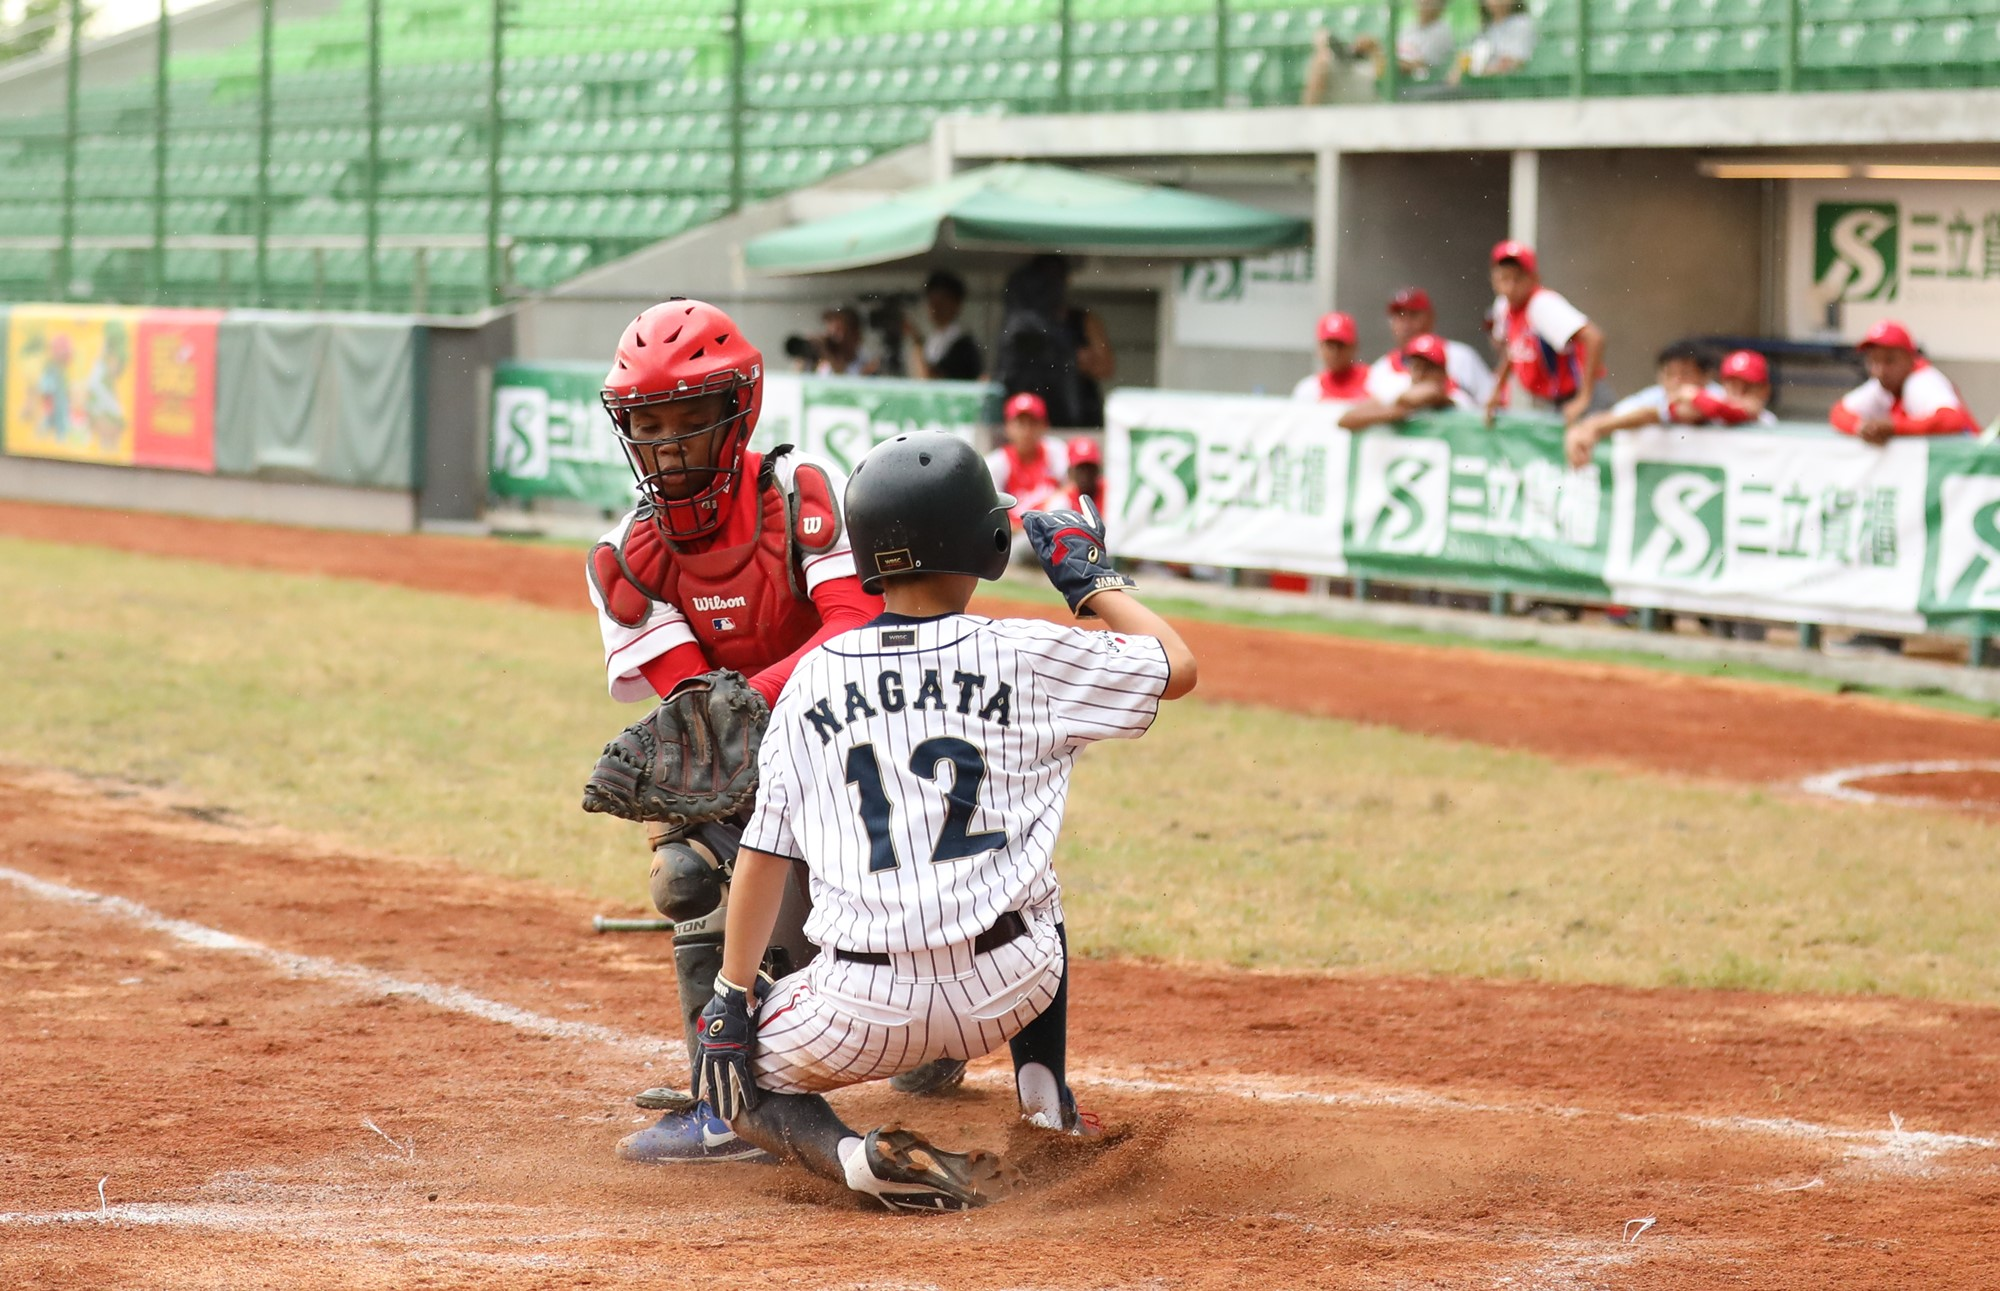 Japan scored the go ahead run in the bottom of the first